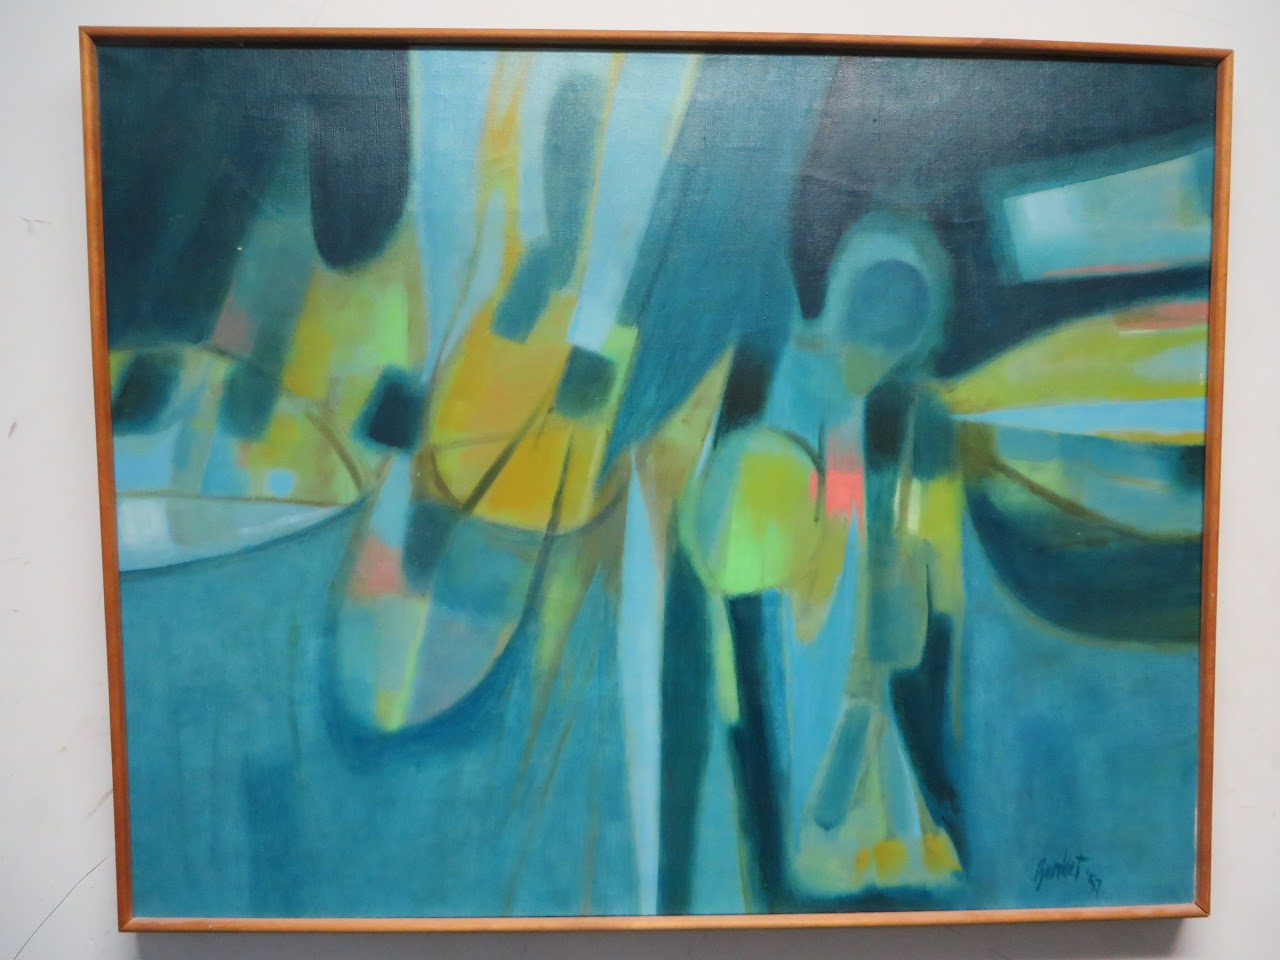 Leroy K. Burket Abstract Painting